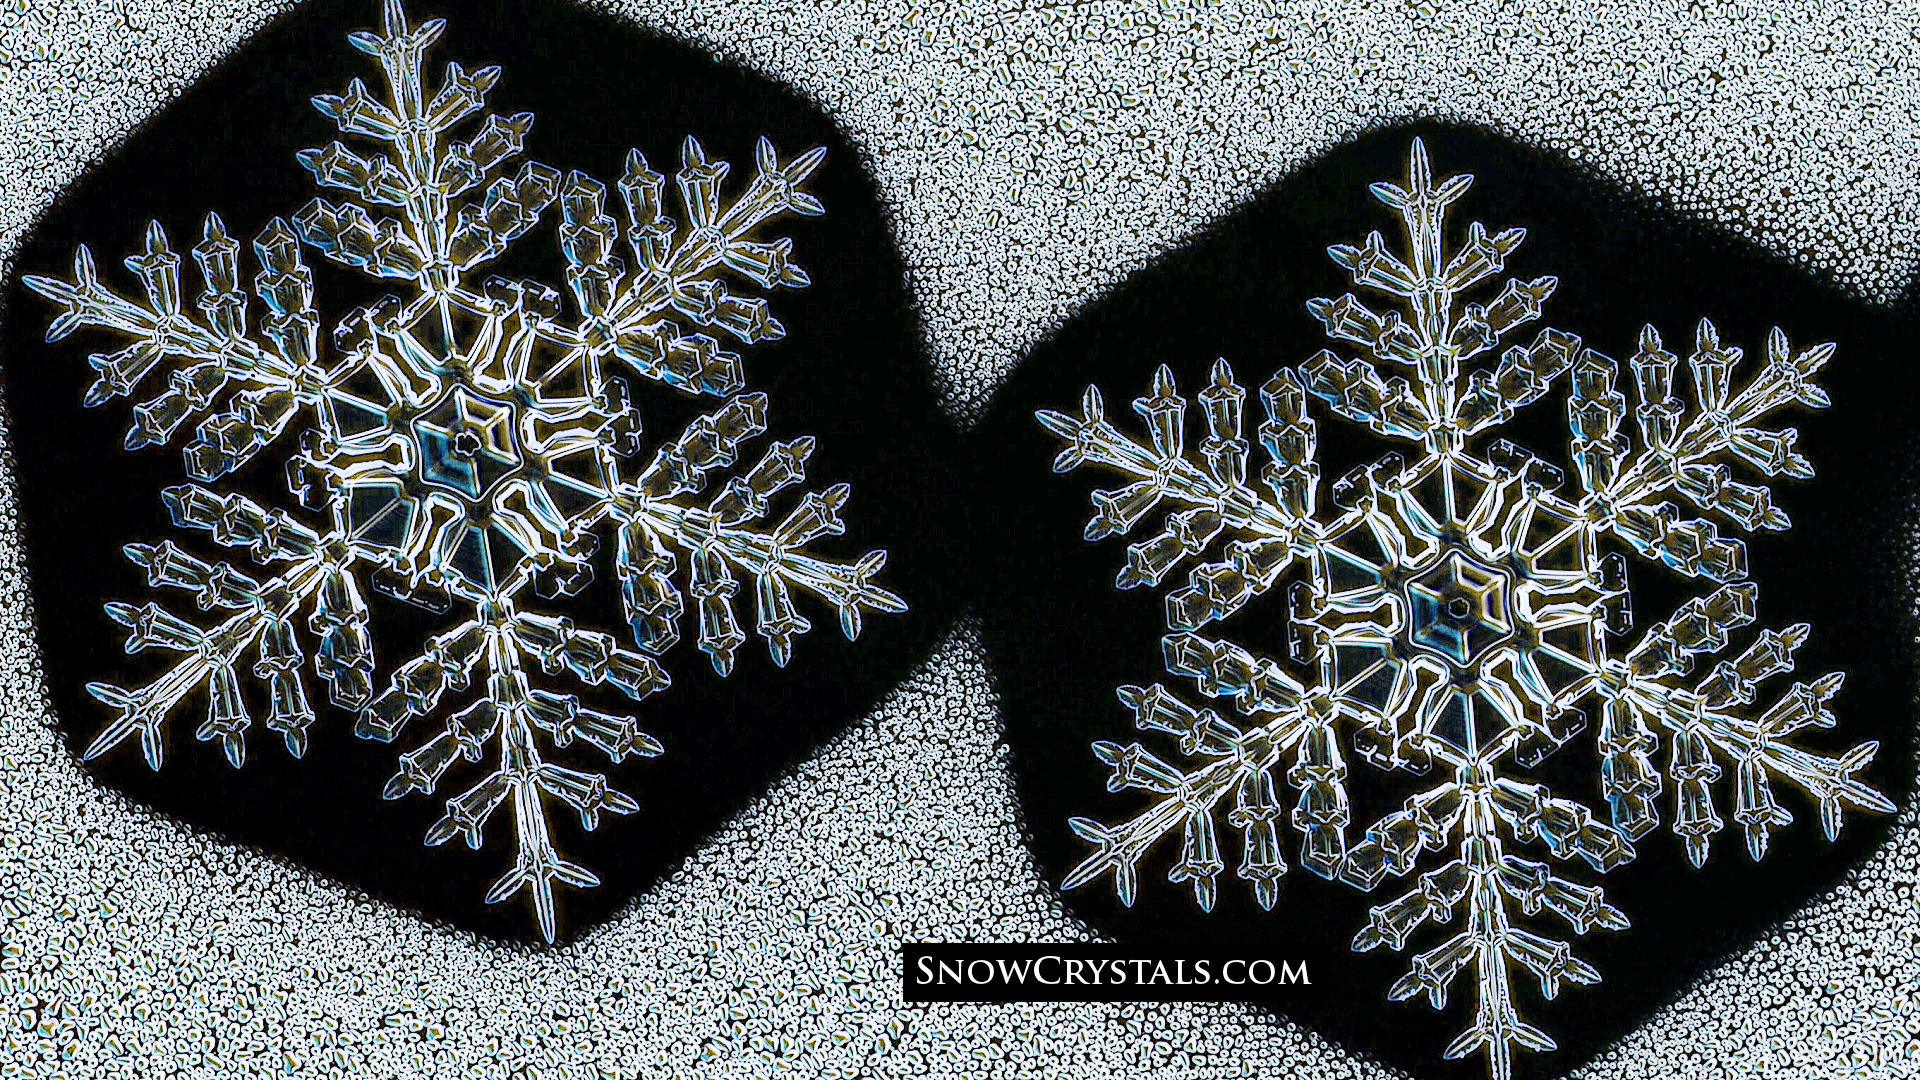 identical twin snowflakes snowcrystals com